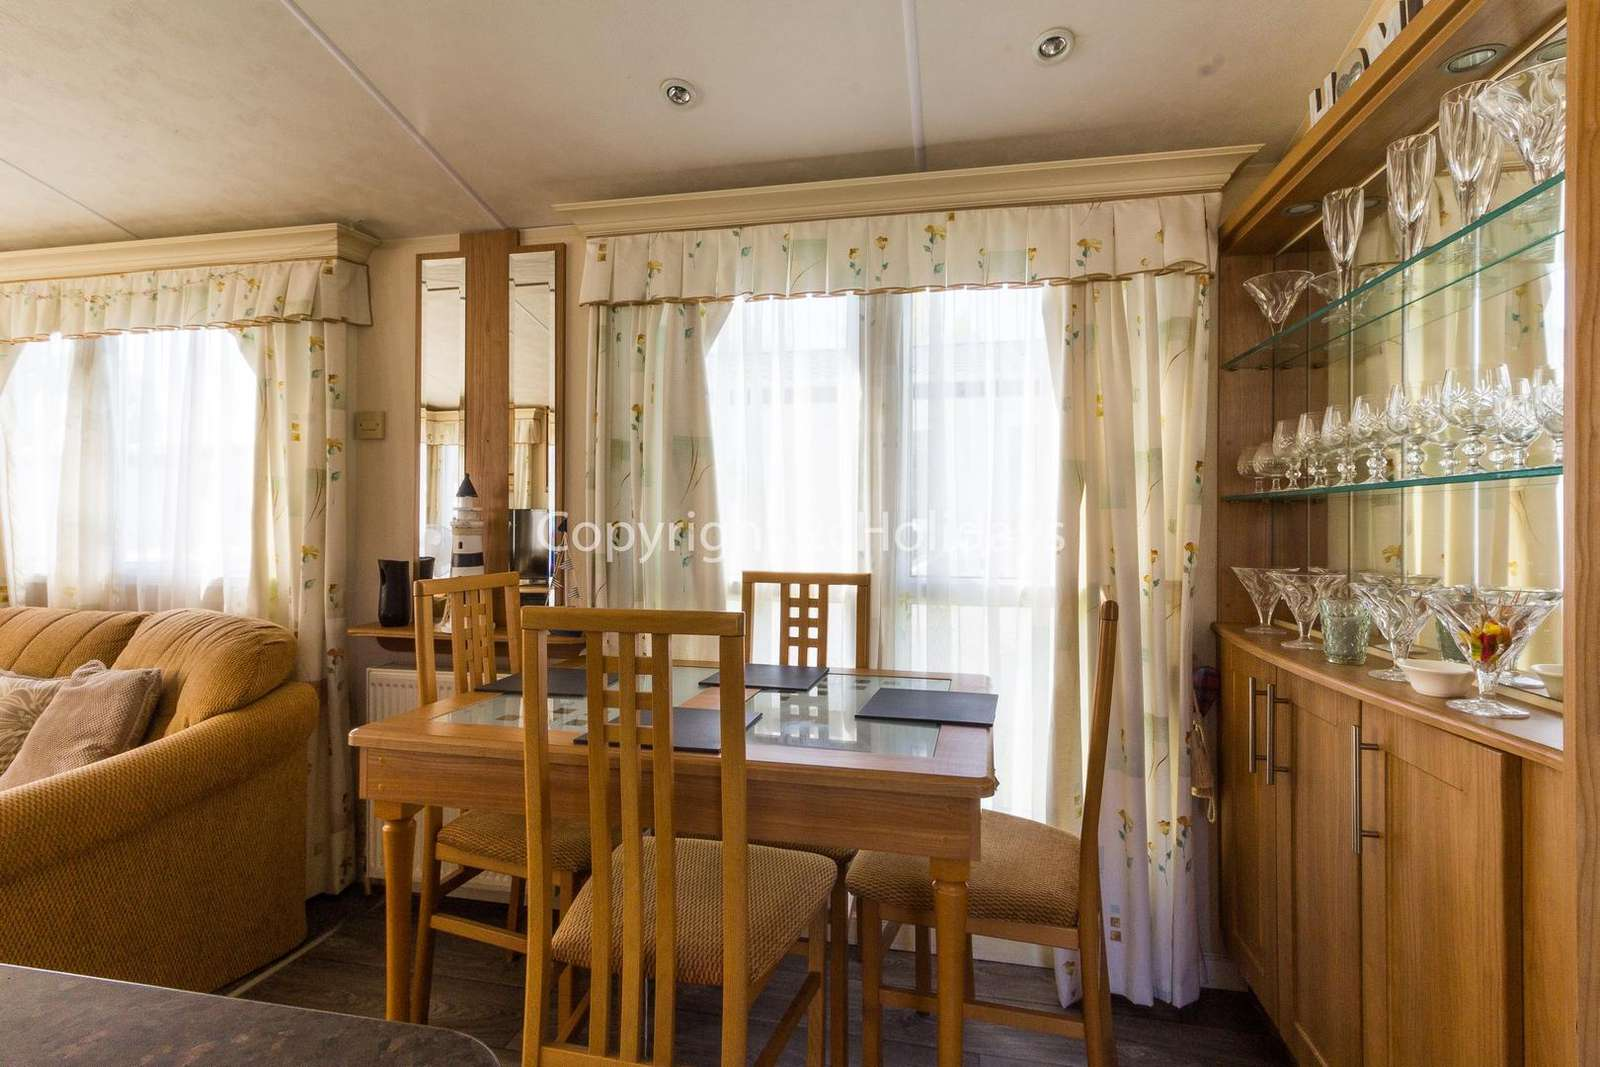 Great place to dine with your family or friends in this self-catering holidays!